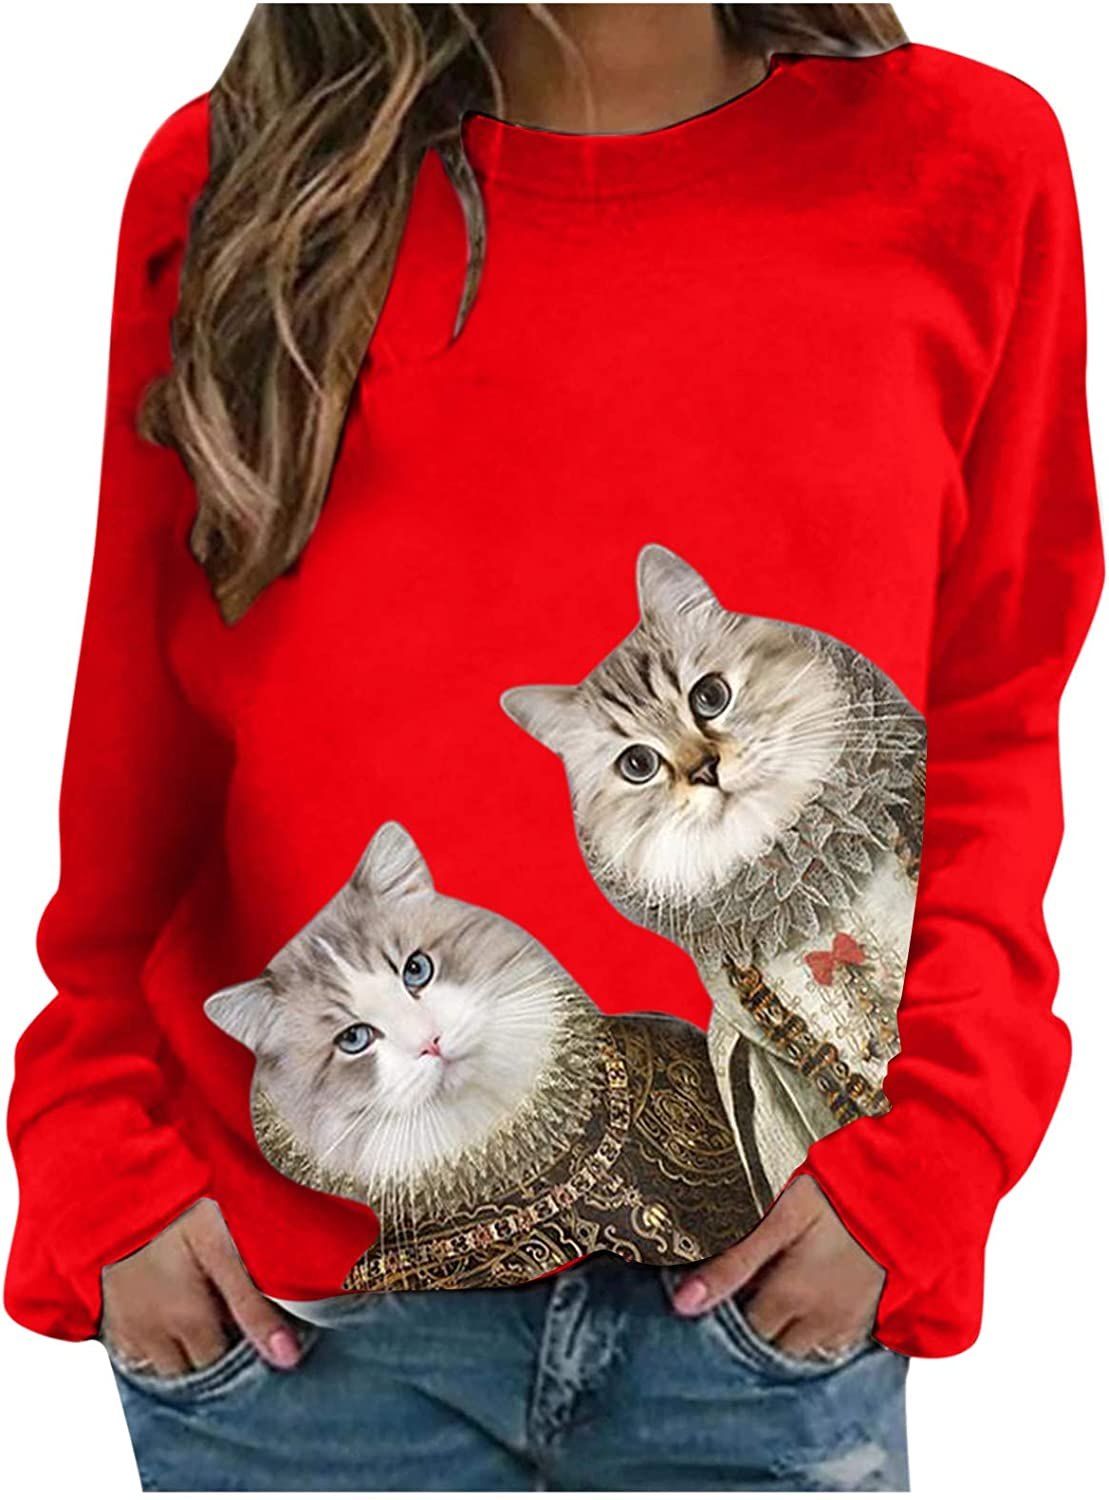 Cat Graphic Sweatshirts for Women Vintage Funny Long Sleeve Shirts with Design Ragdoll Cute Crewneck Tops 2021